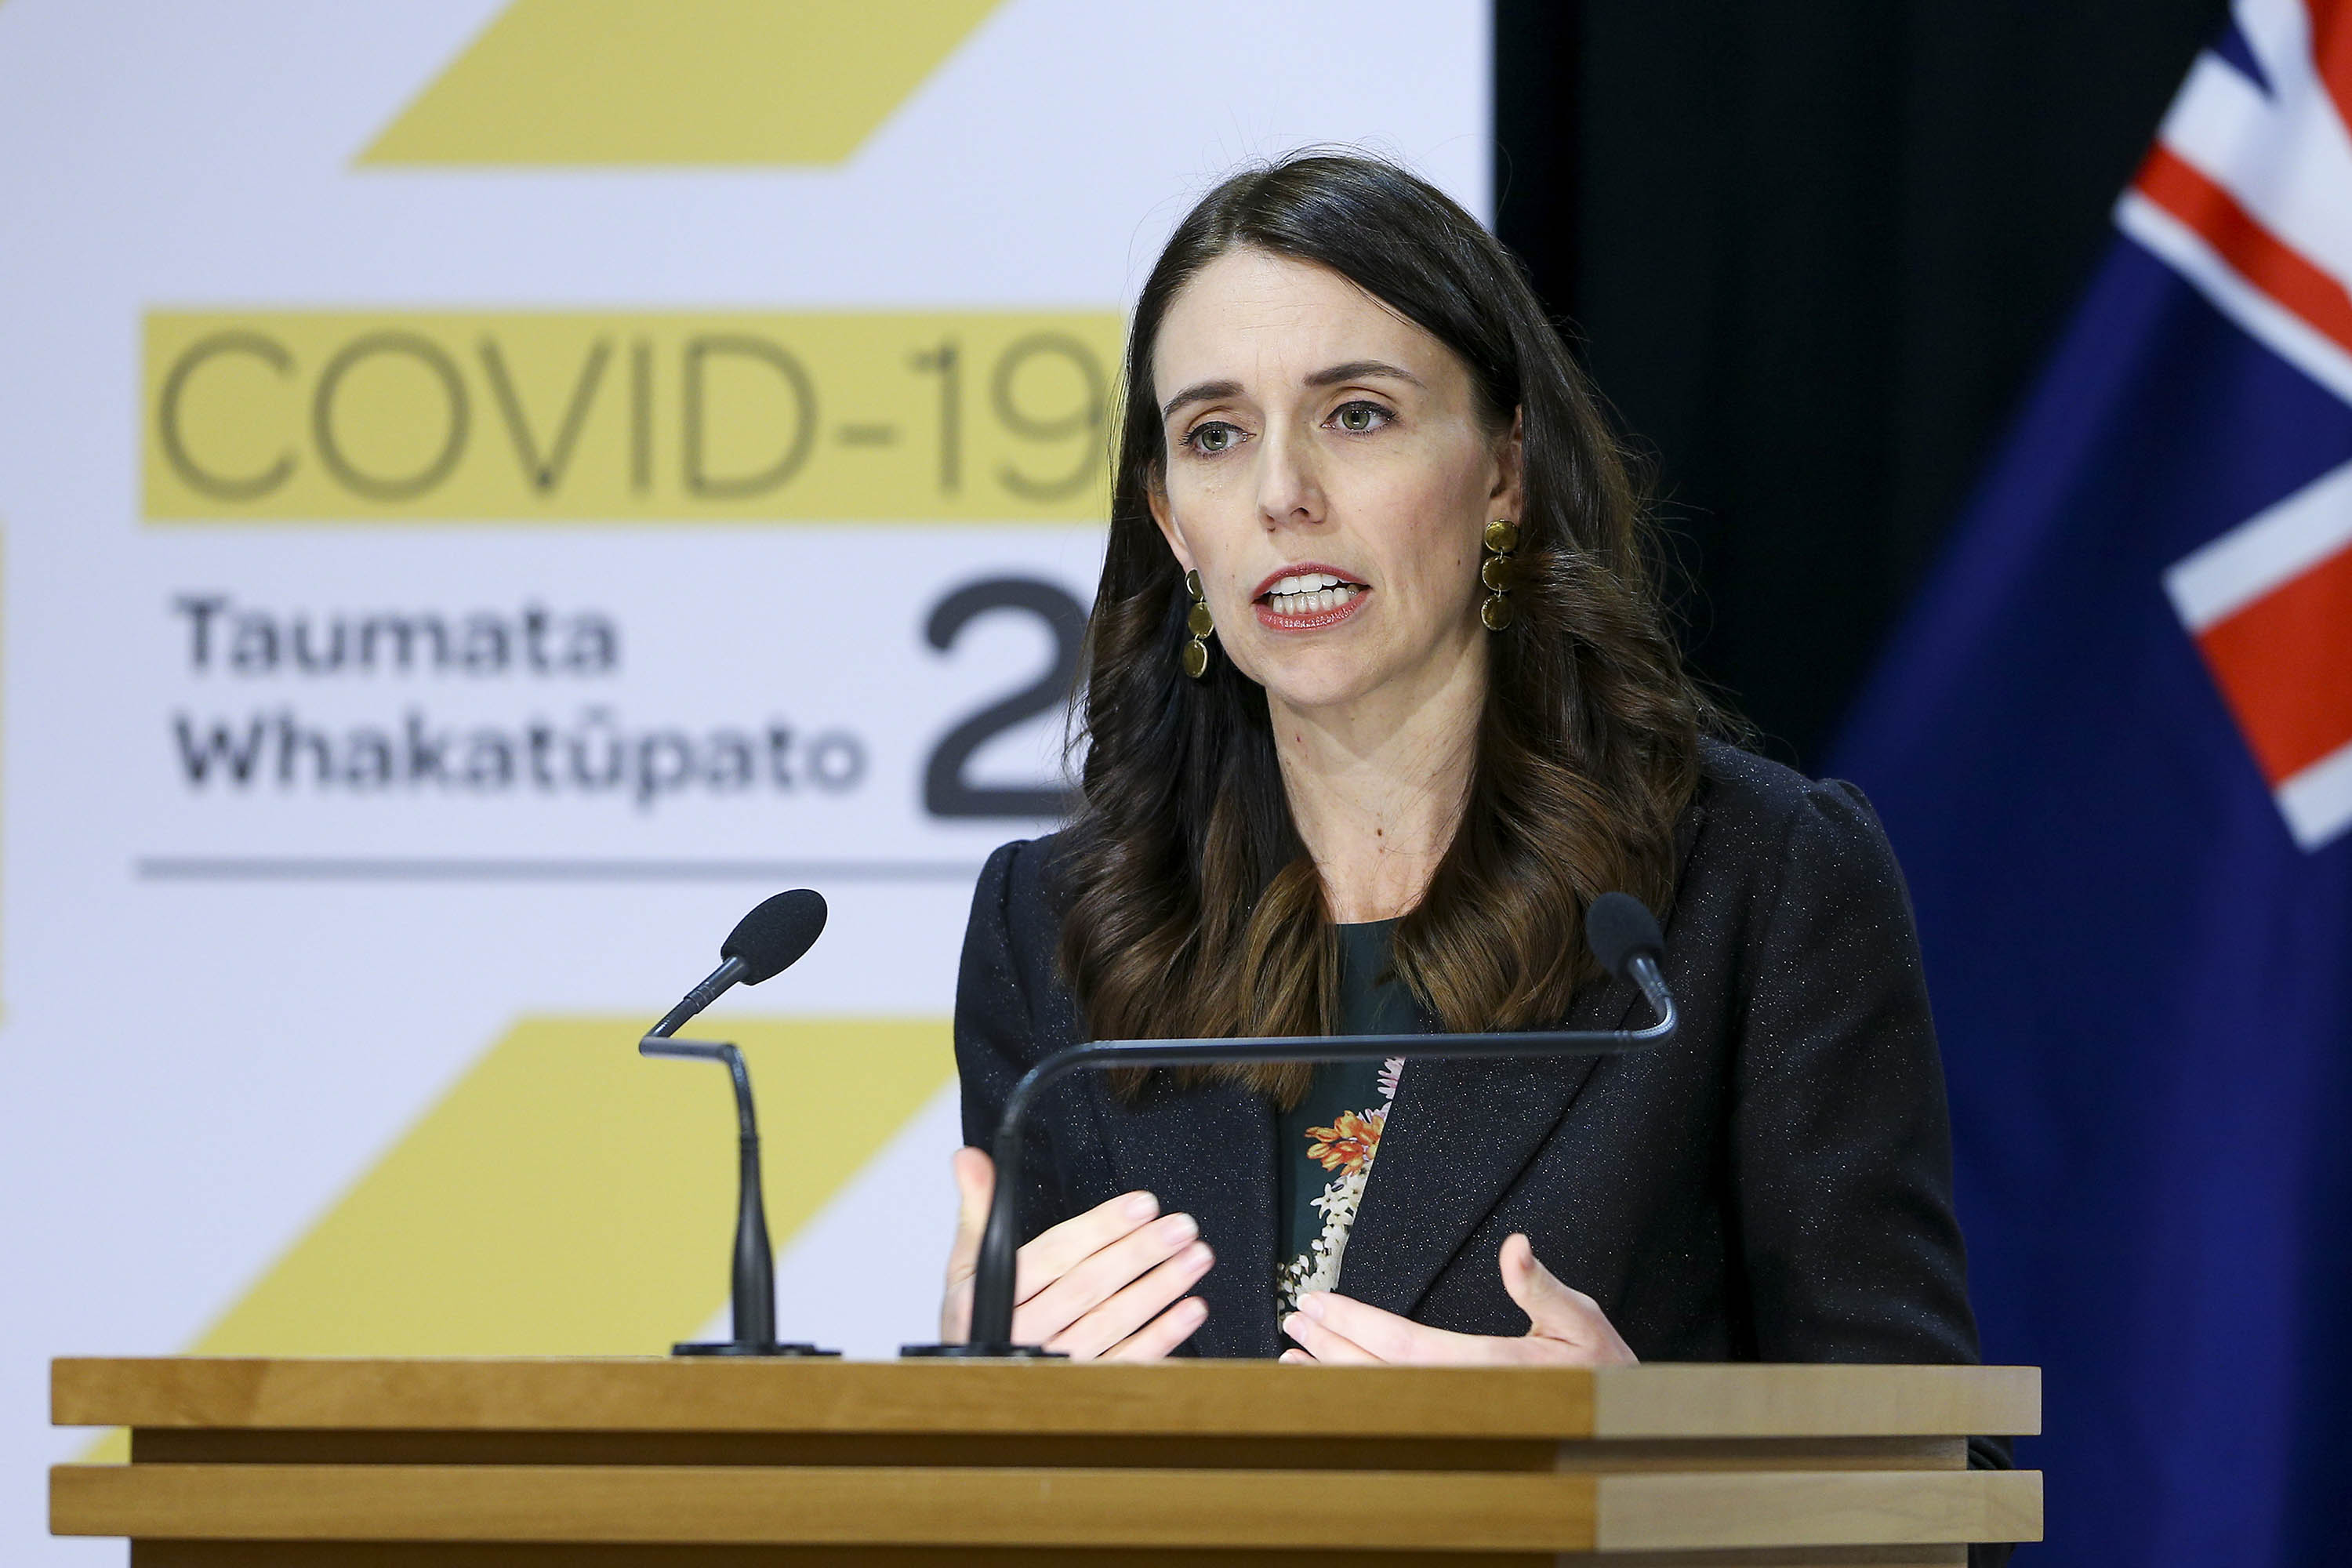 New Zealand's Prime Minister Jacinda Ardern is pictured during a news conference in Wellington, New Zealand on May 27.